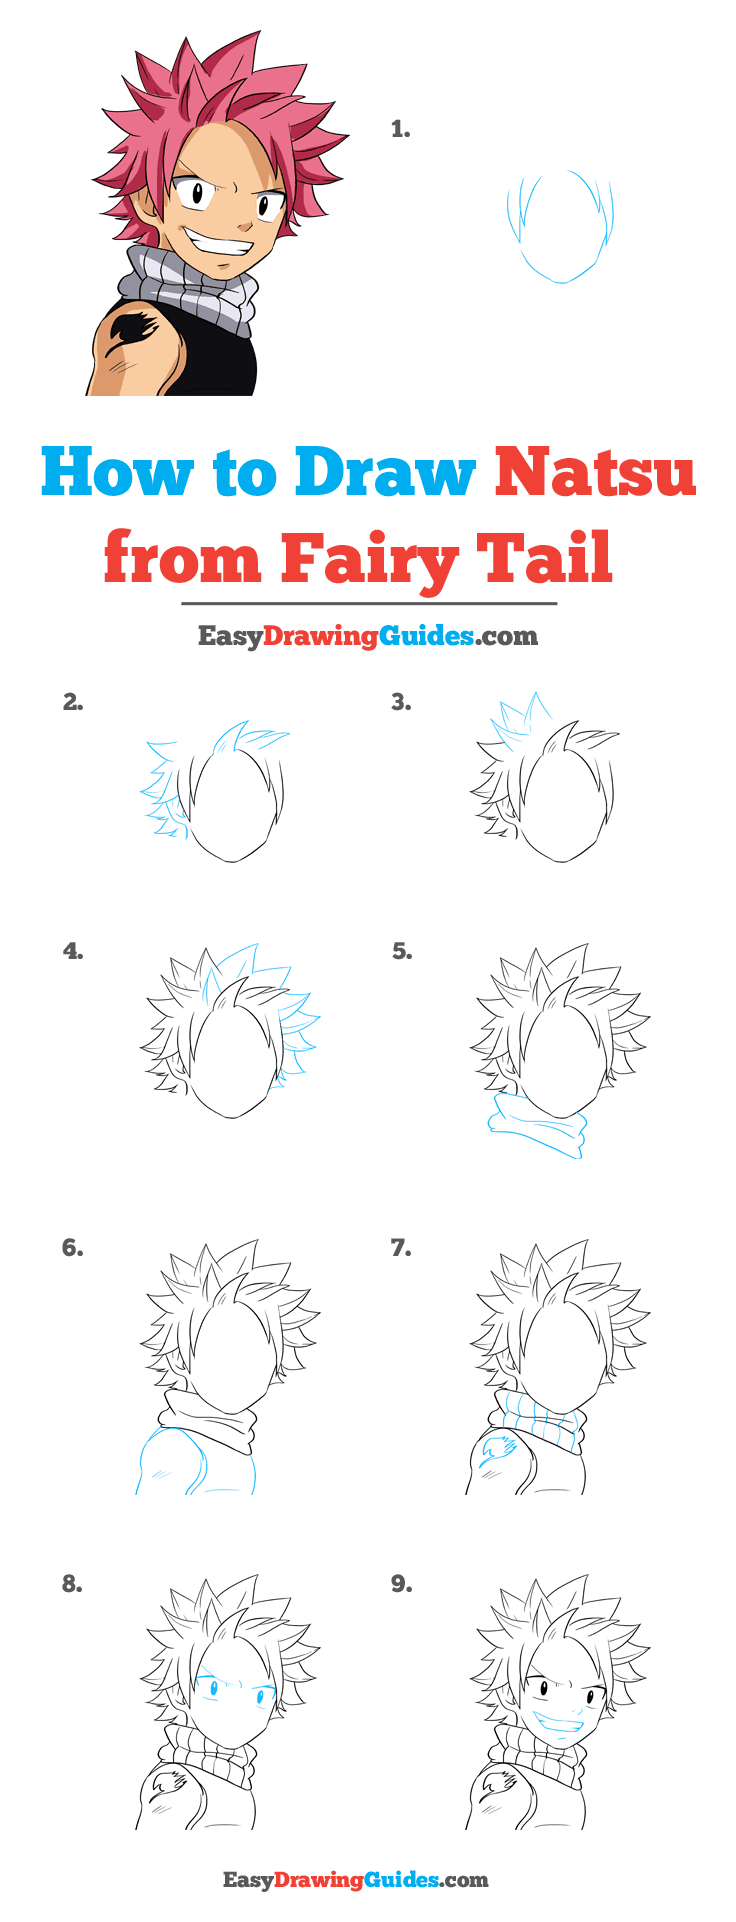 How to Draw Natsu from Fairy Tail Step by Step Tutorial Image